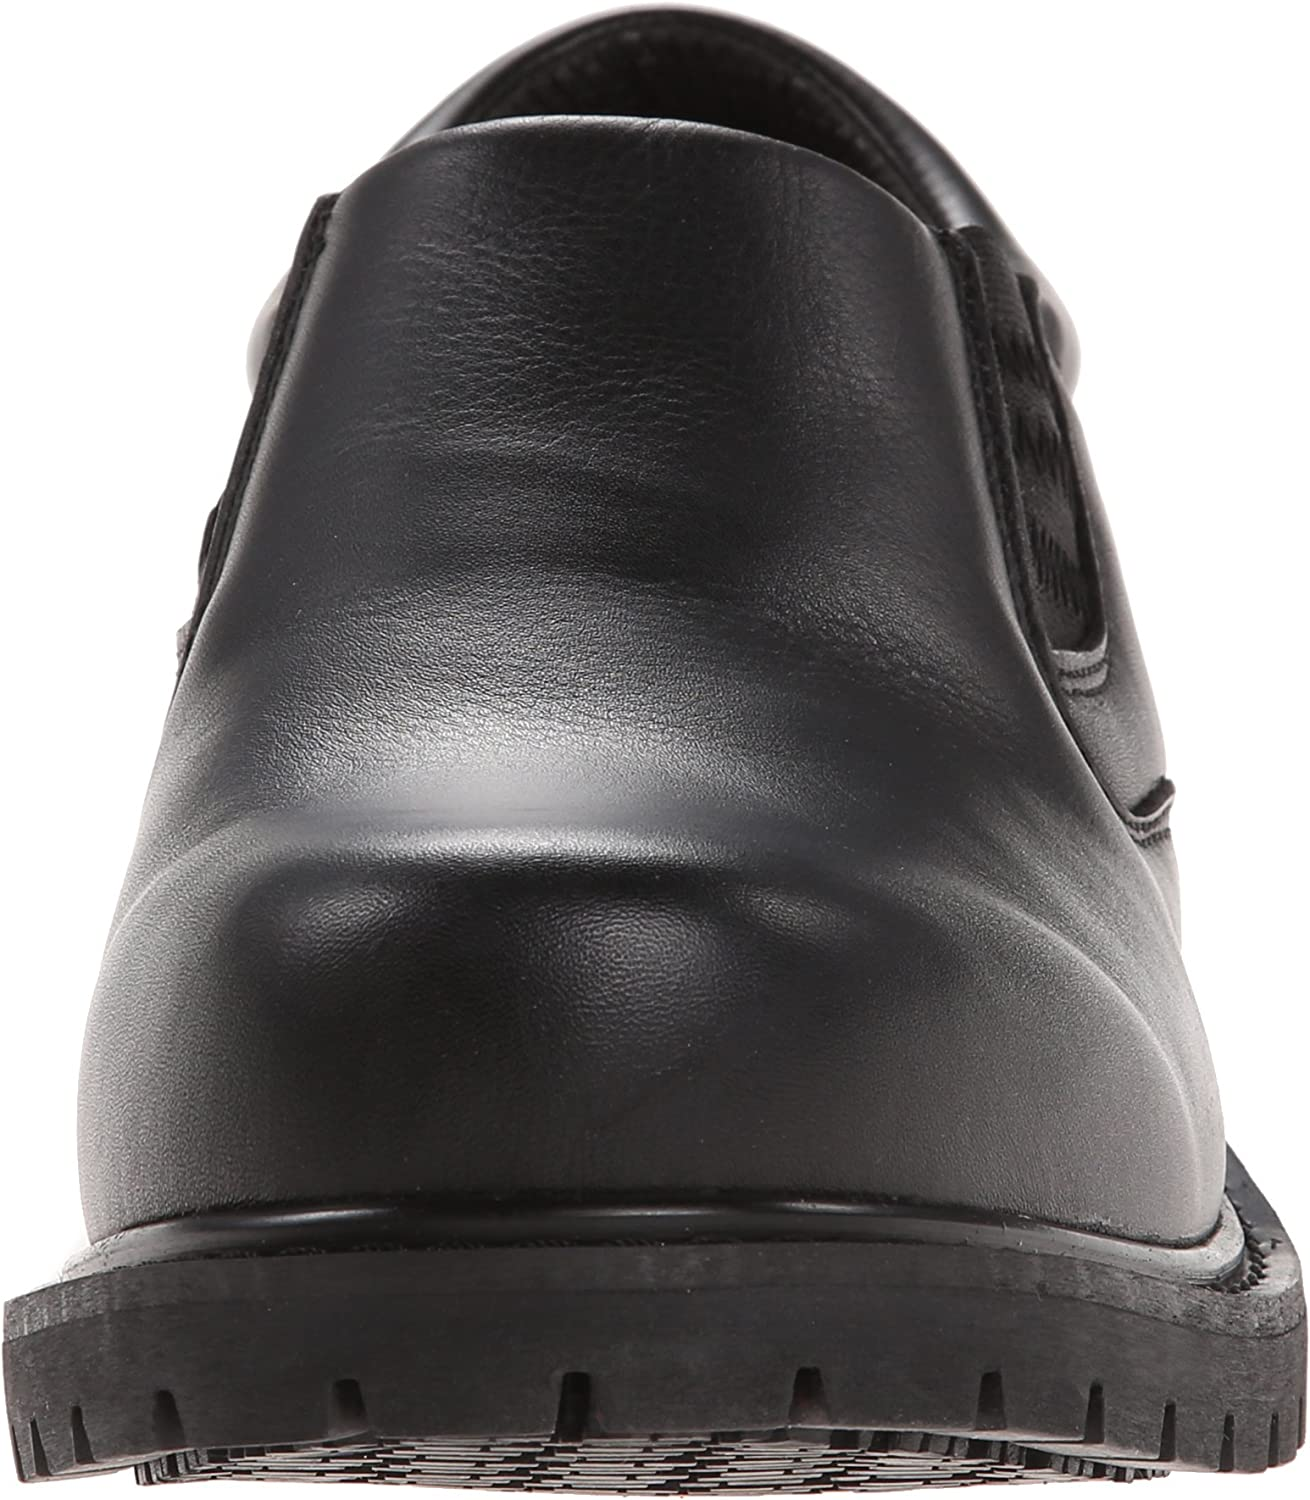 Skechers for Work 77046 Cottonwood Goddard Double Gore Slip